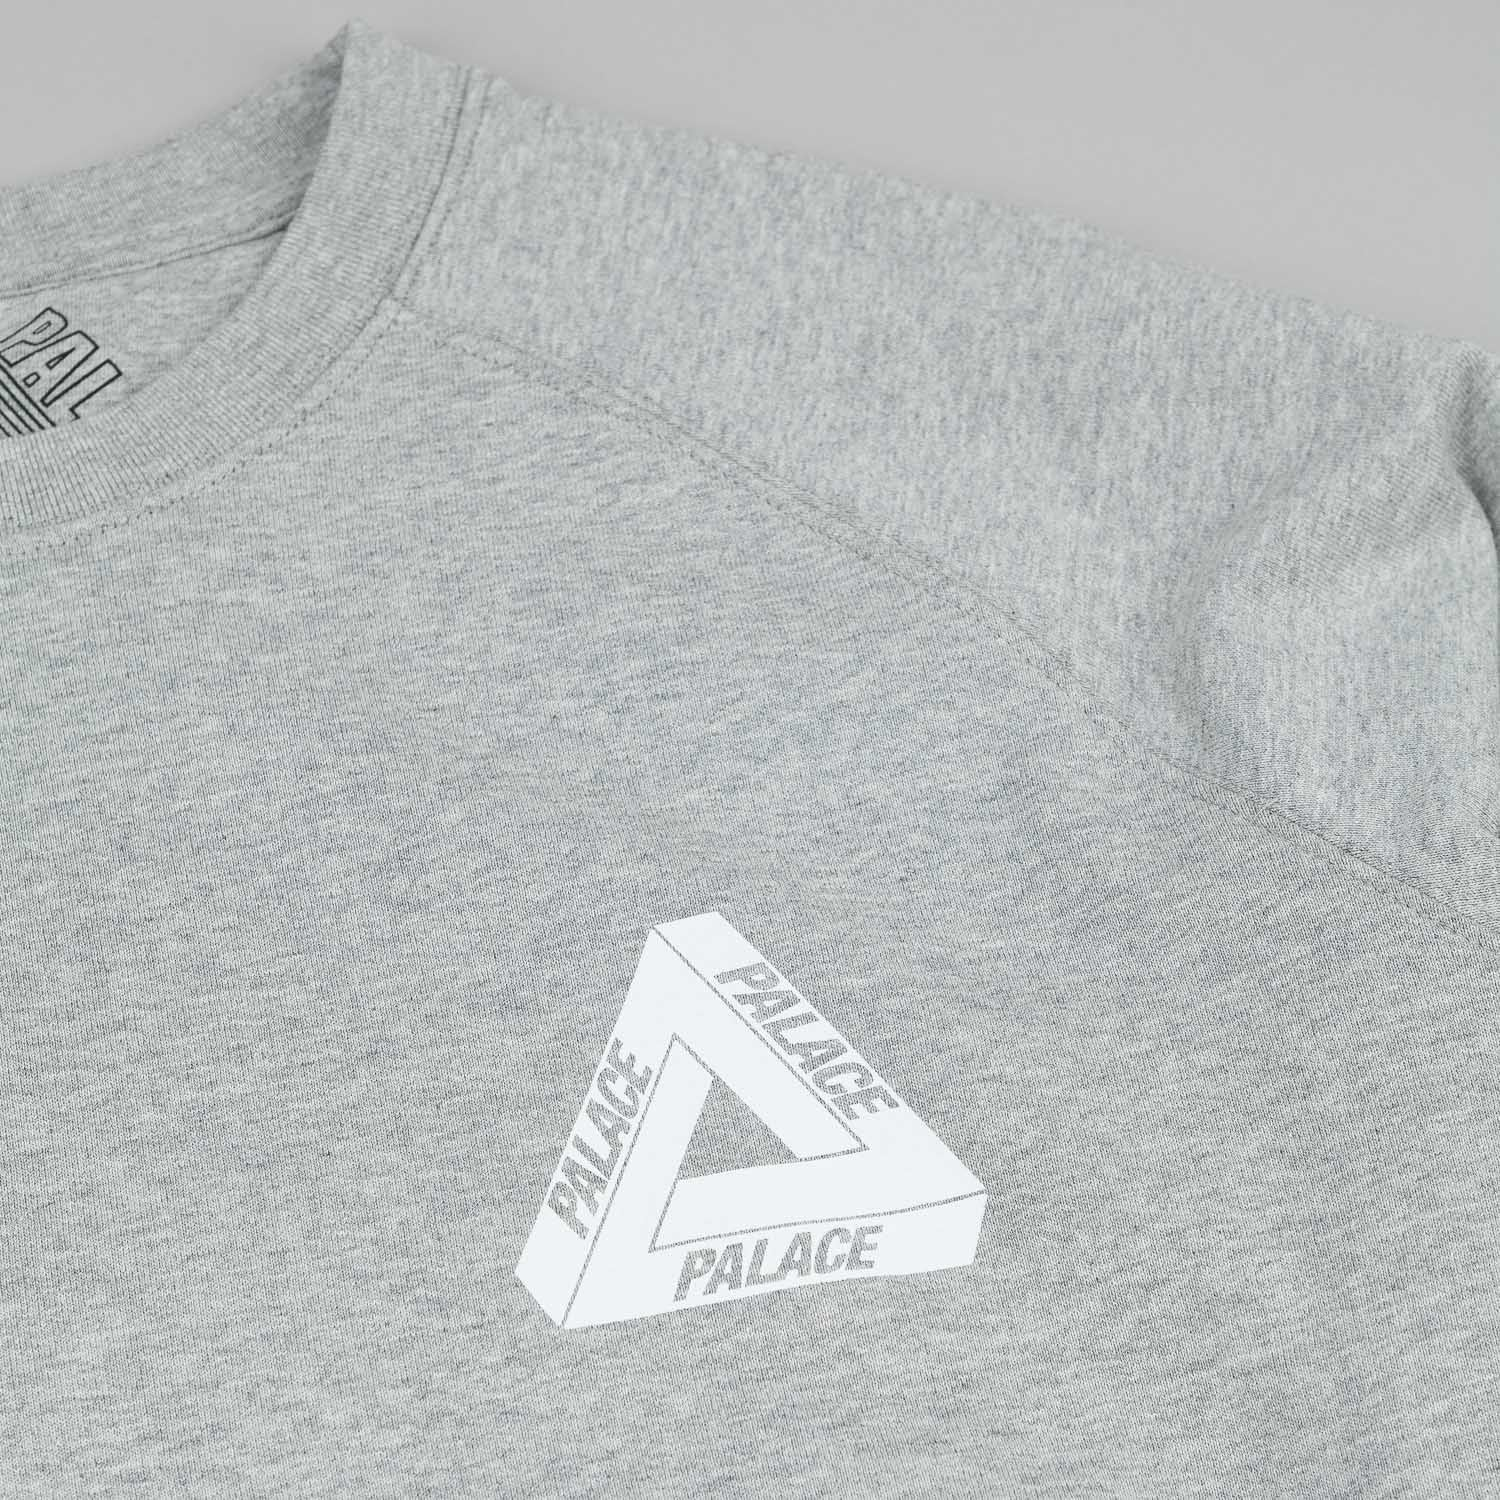 Palace Tri-Wild Crew Neck Sweatshirt - Grey